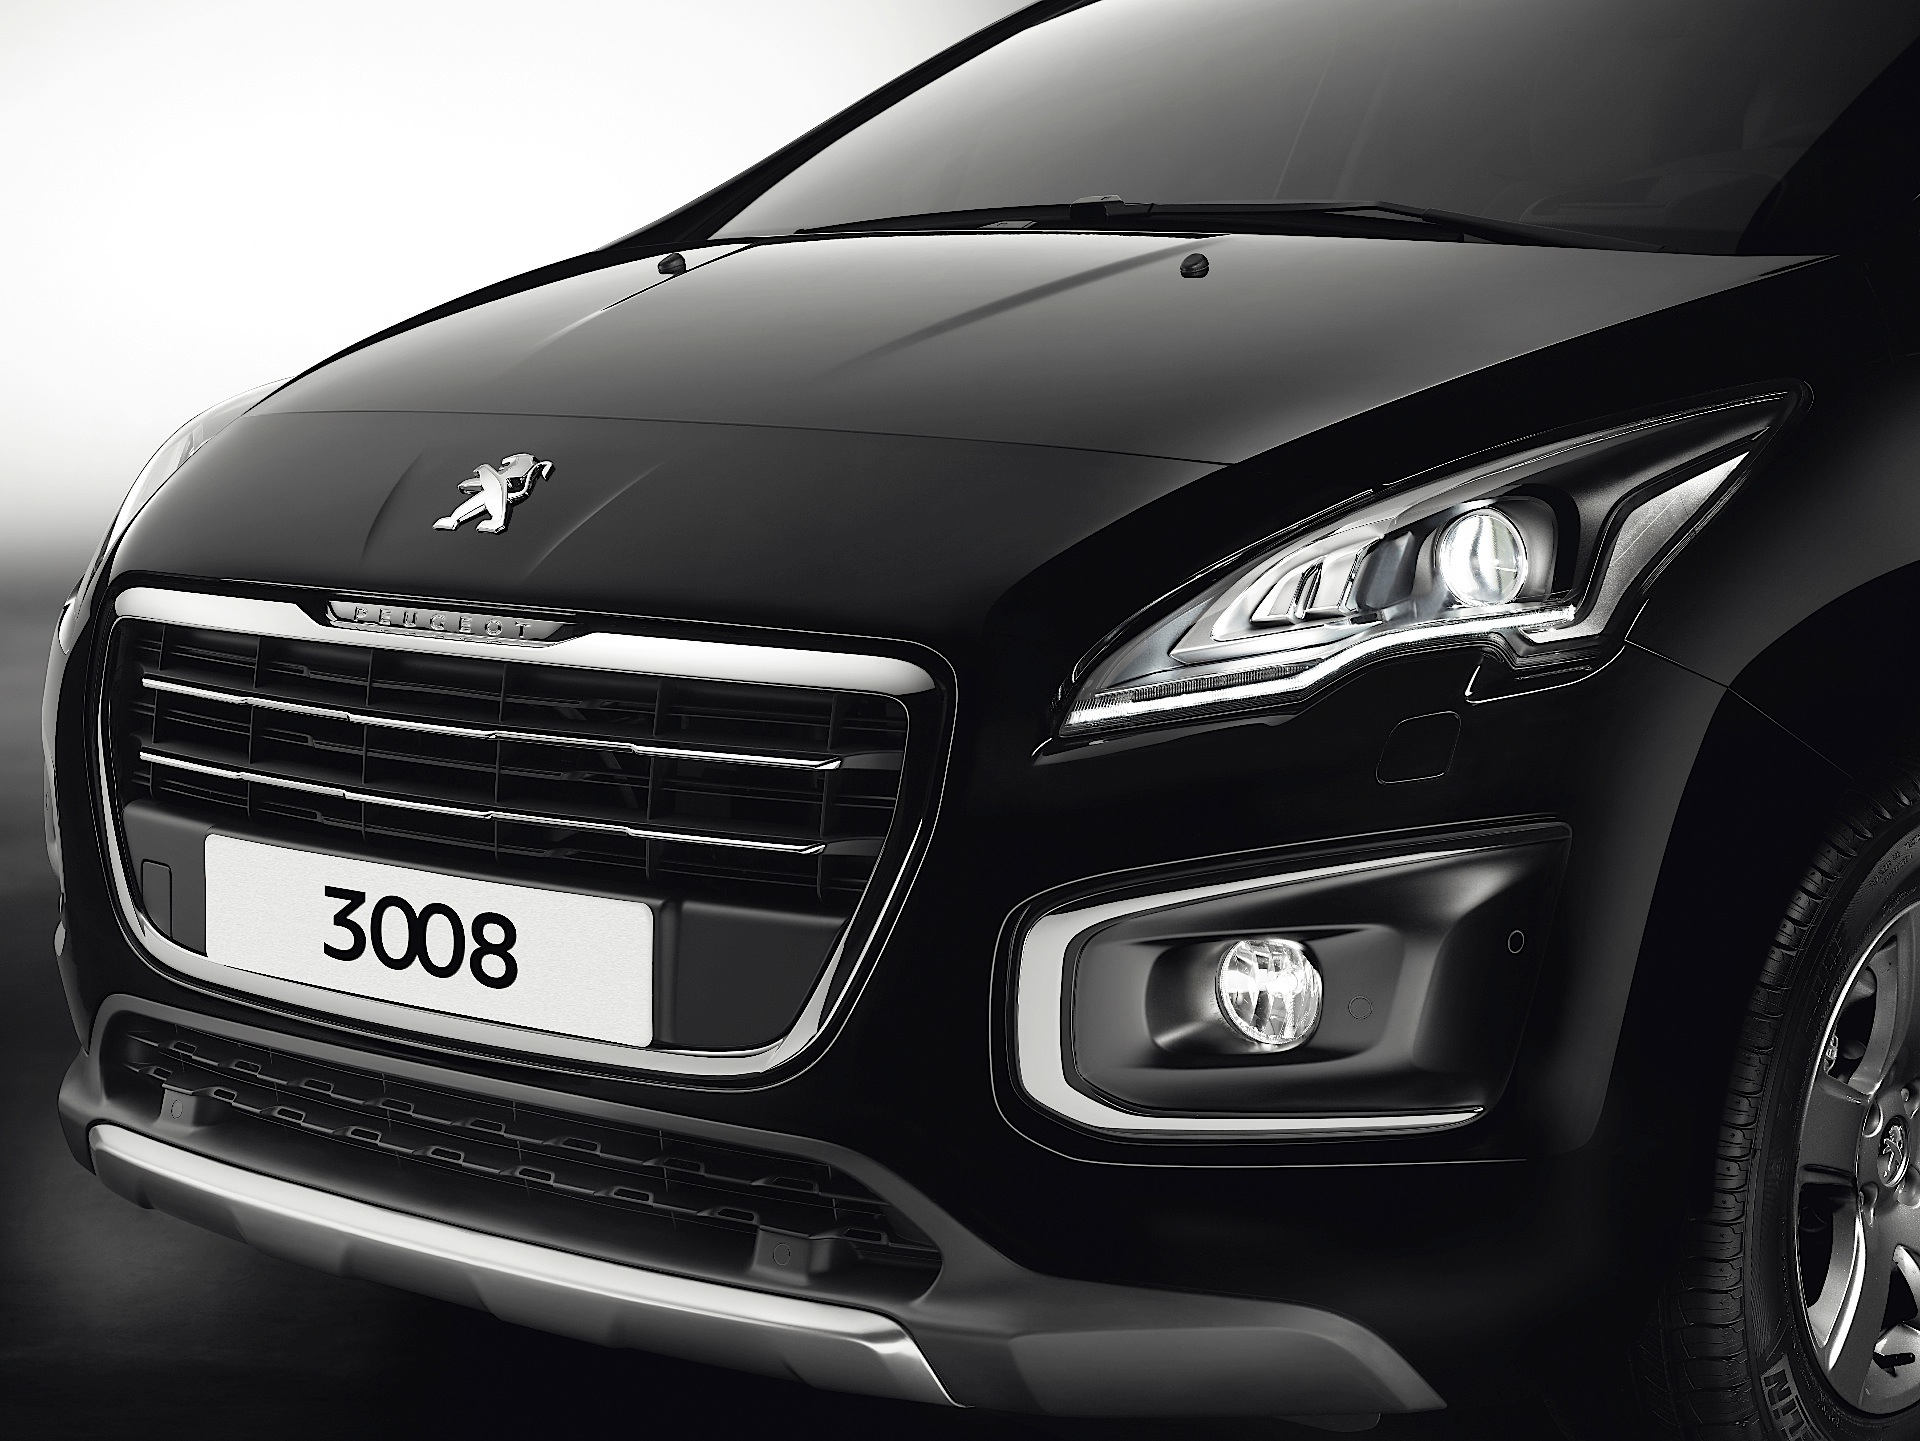 peugeot 3008 specs 2013 2014 2015 2016 autoevolution. Black Bedroom Furniture Sets. Home Design Ideas